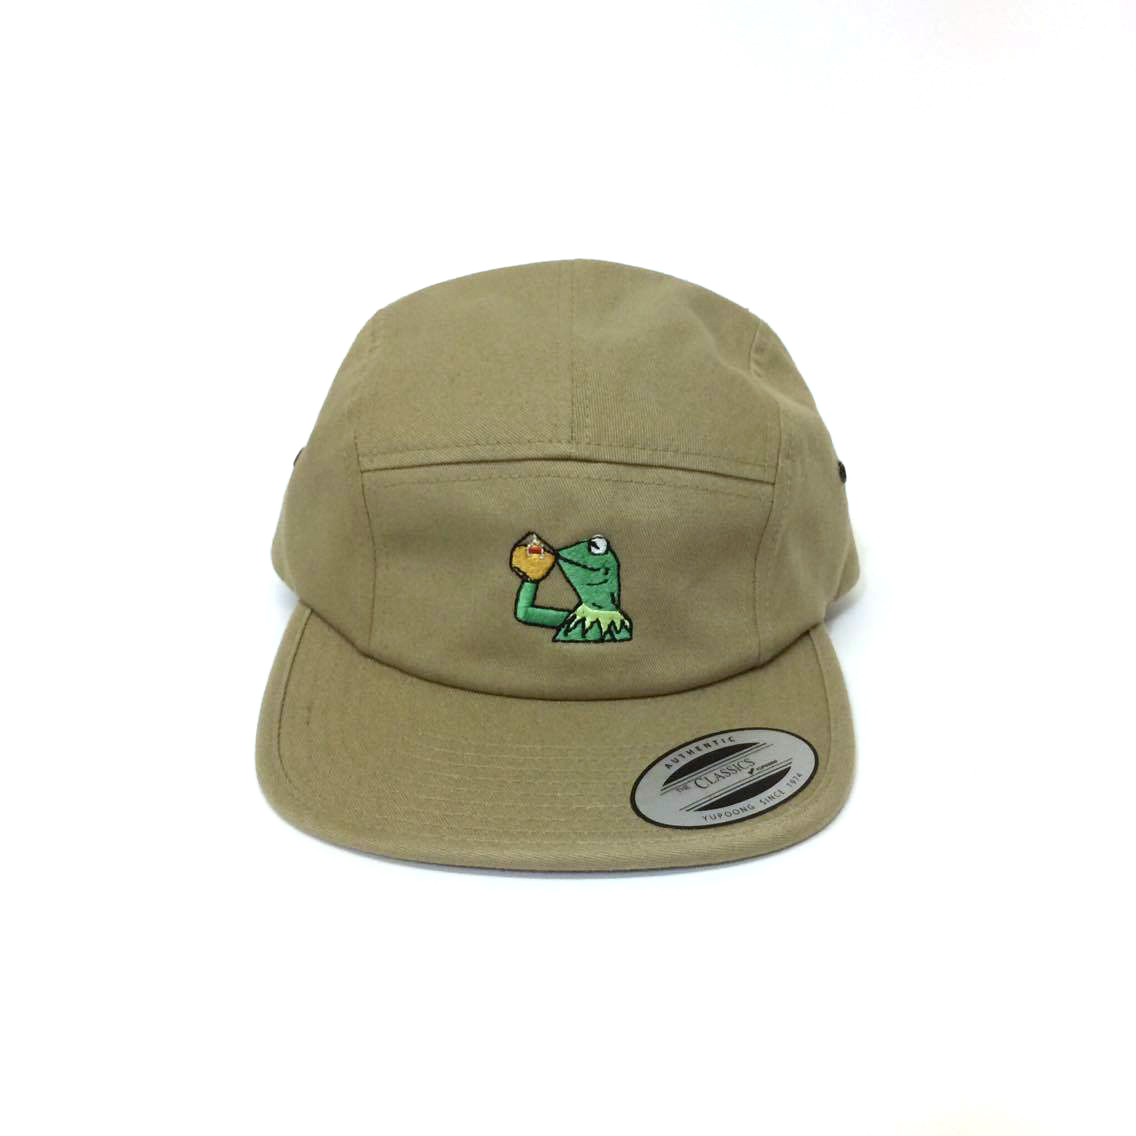 """None Of My Business"" 5 Panel Jockey Cap"